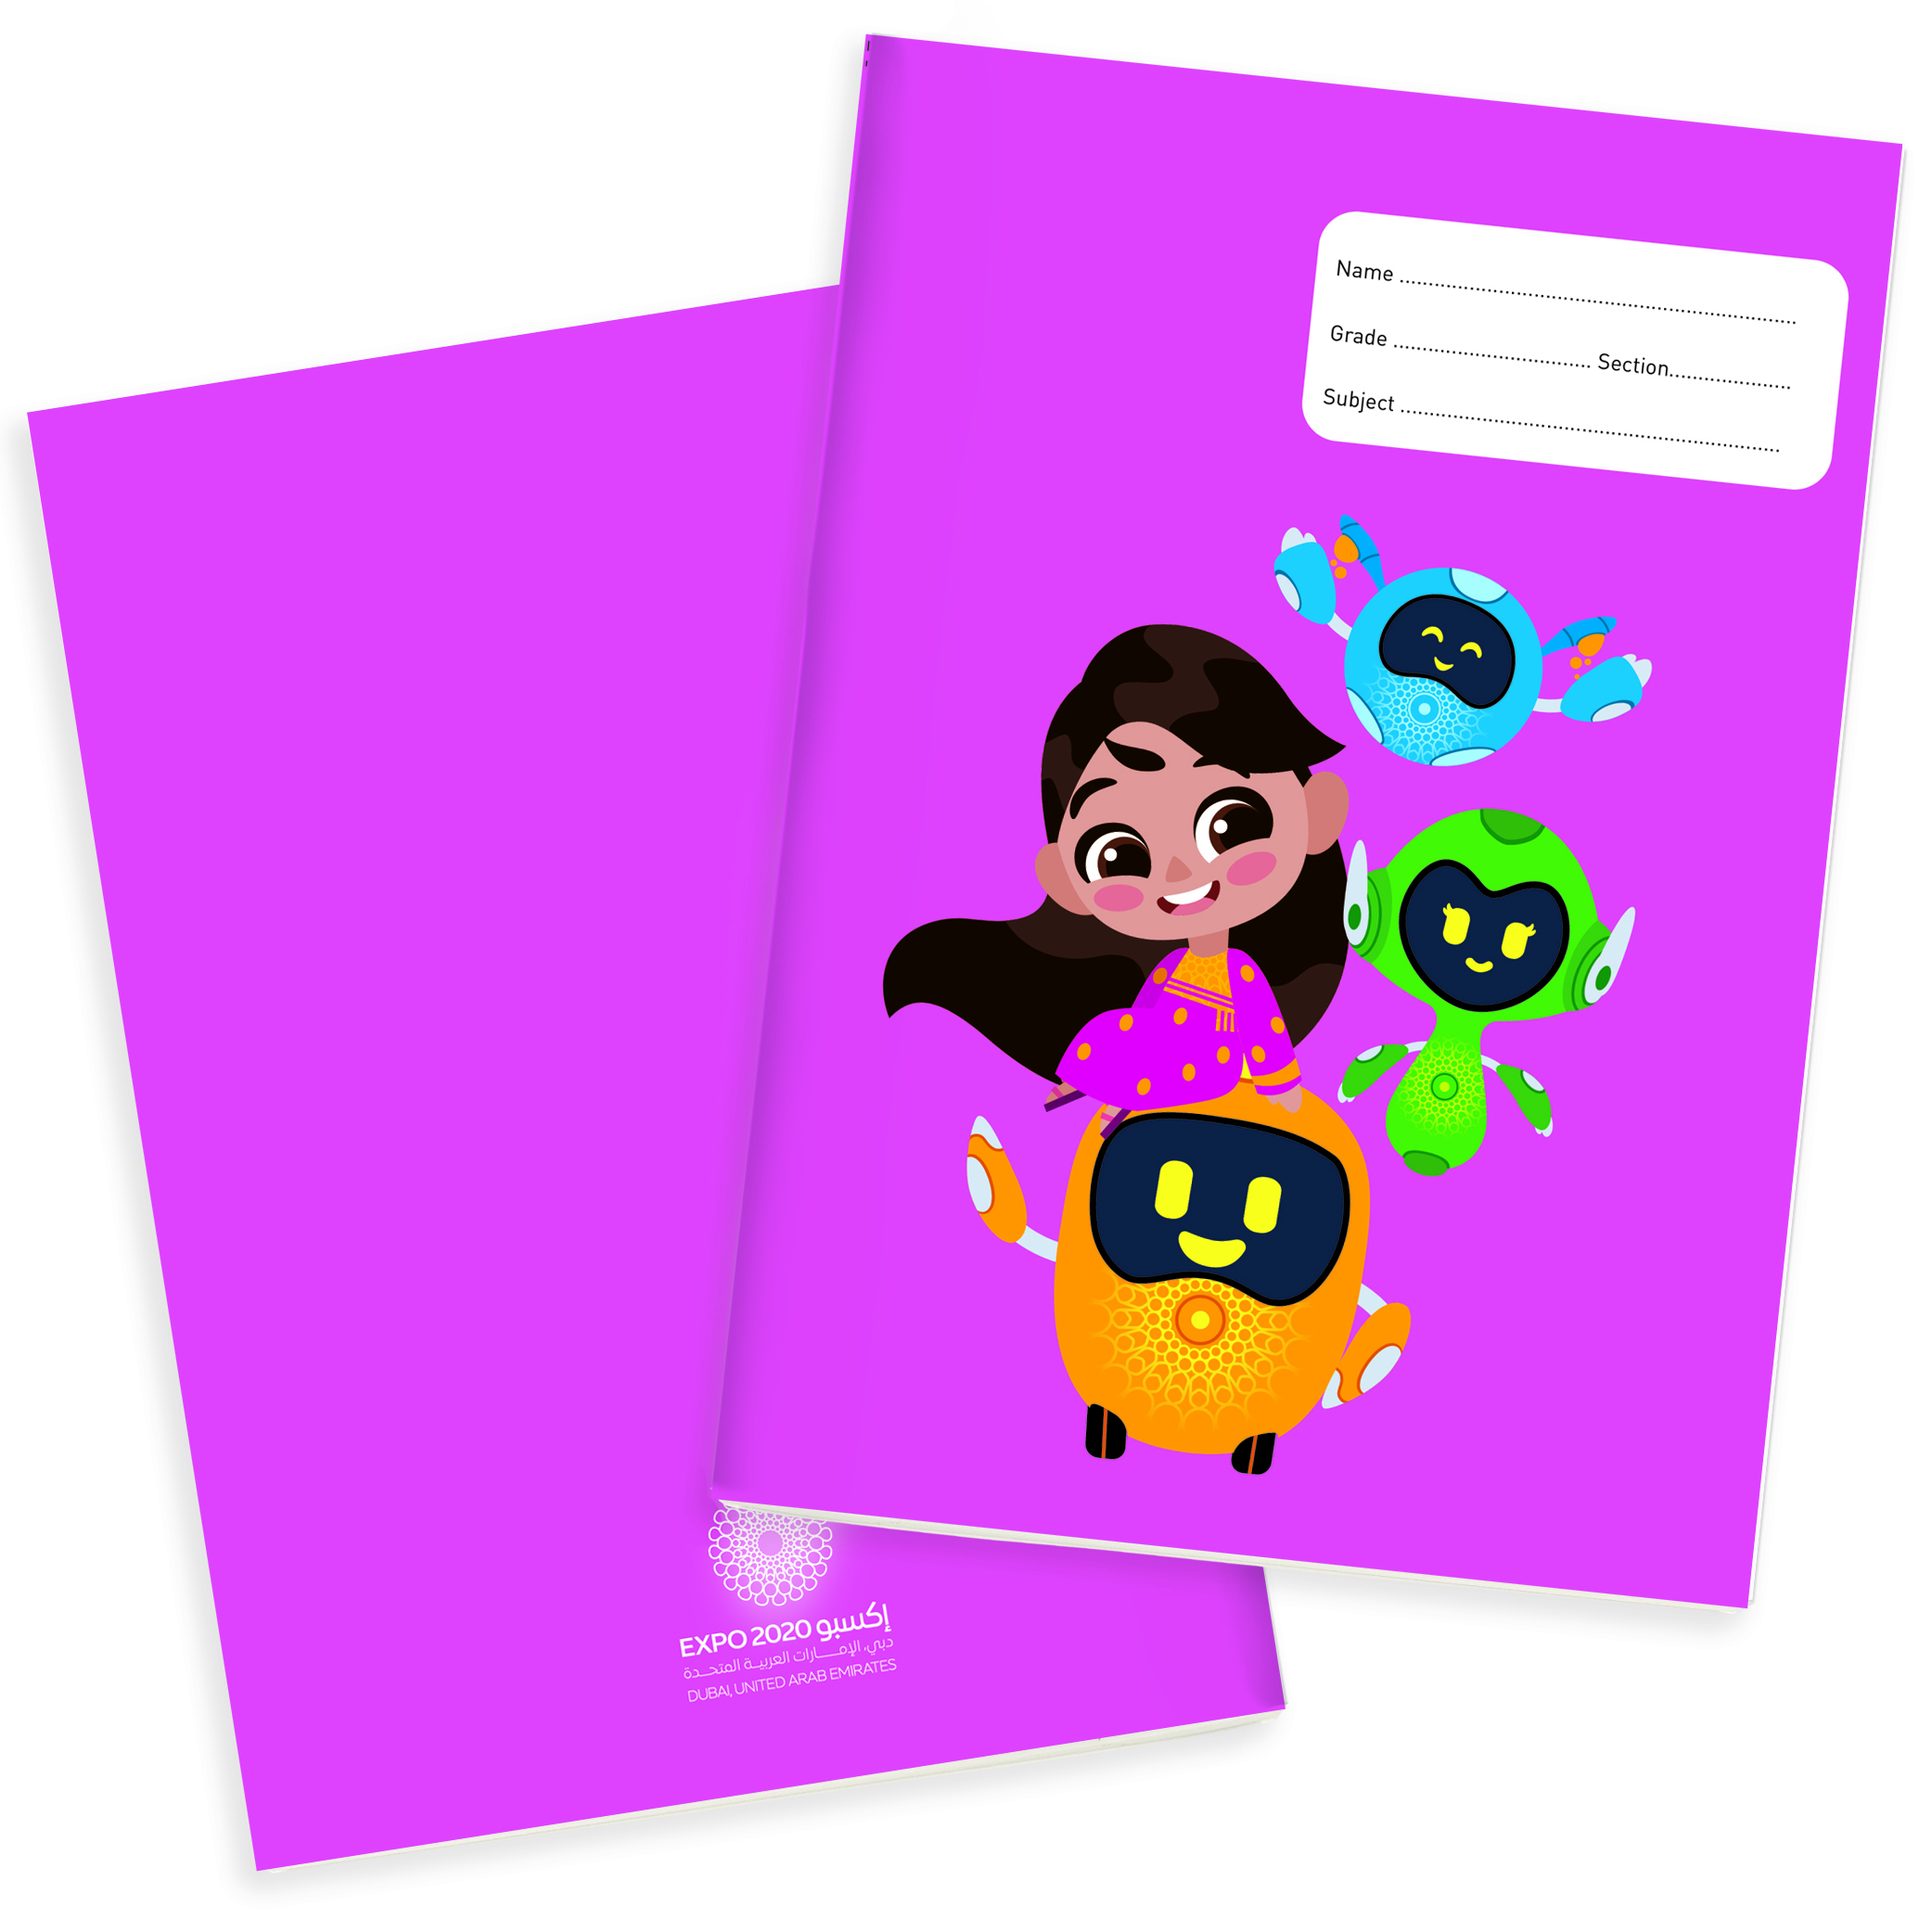 Expo 2020 Dubai Mascots A4 Exercise Books Pack of 4 - 160 Pages